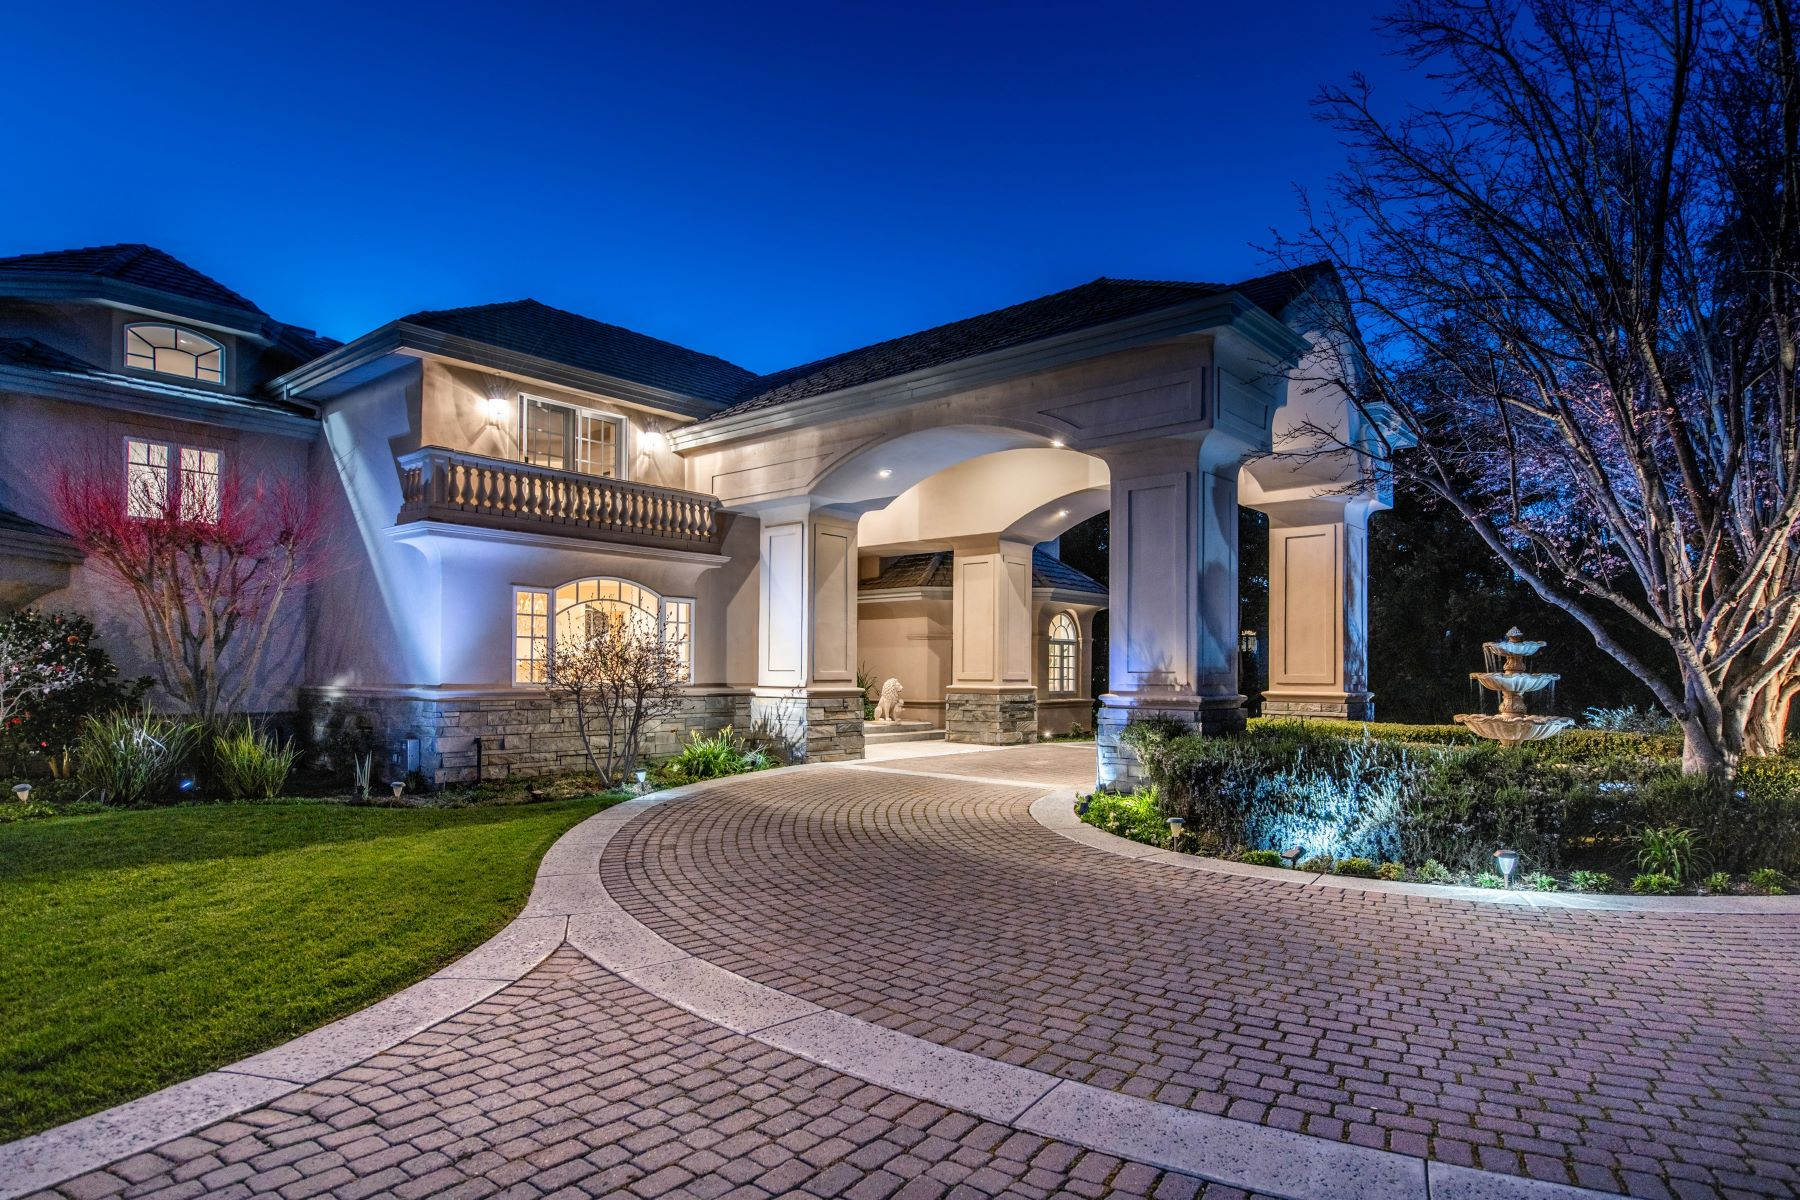 Single Family Home for Active at Exceptional Estate Close To Town 13981 Fremont Pines Lane Los Altos Hills, California 94022 United States